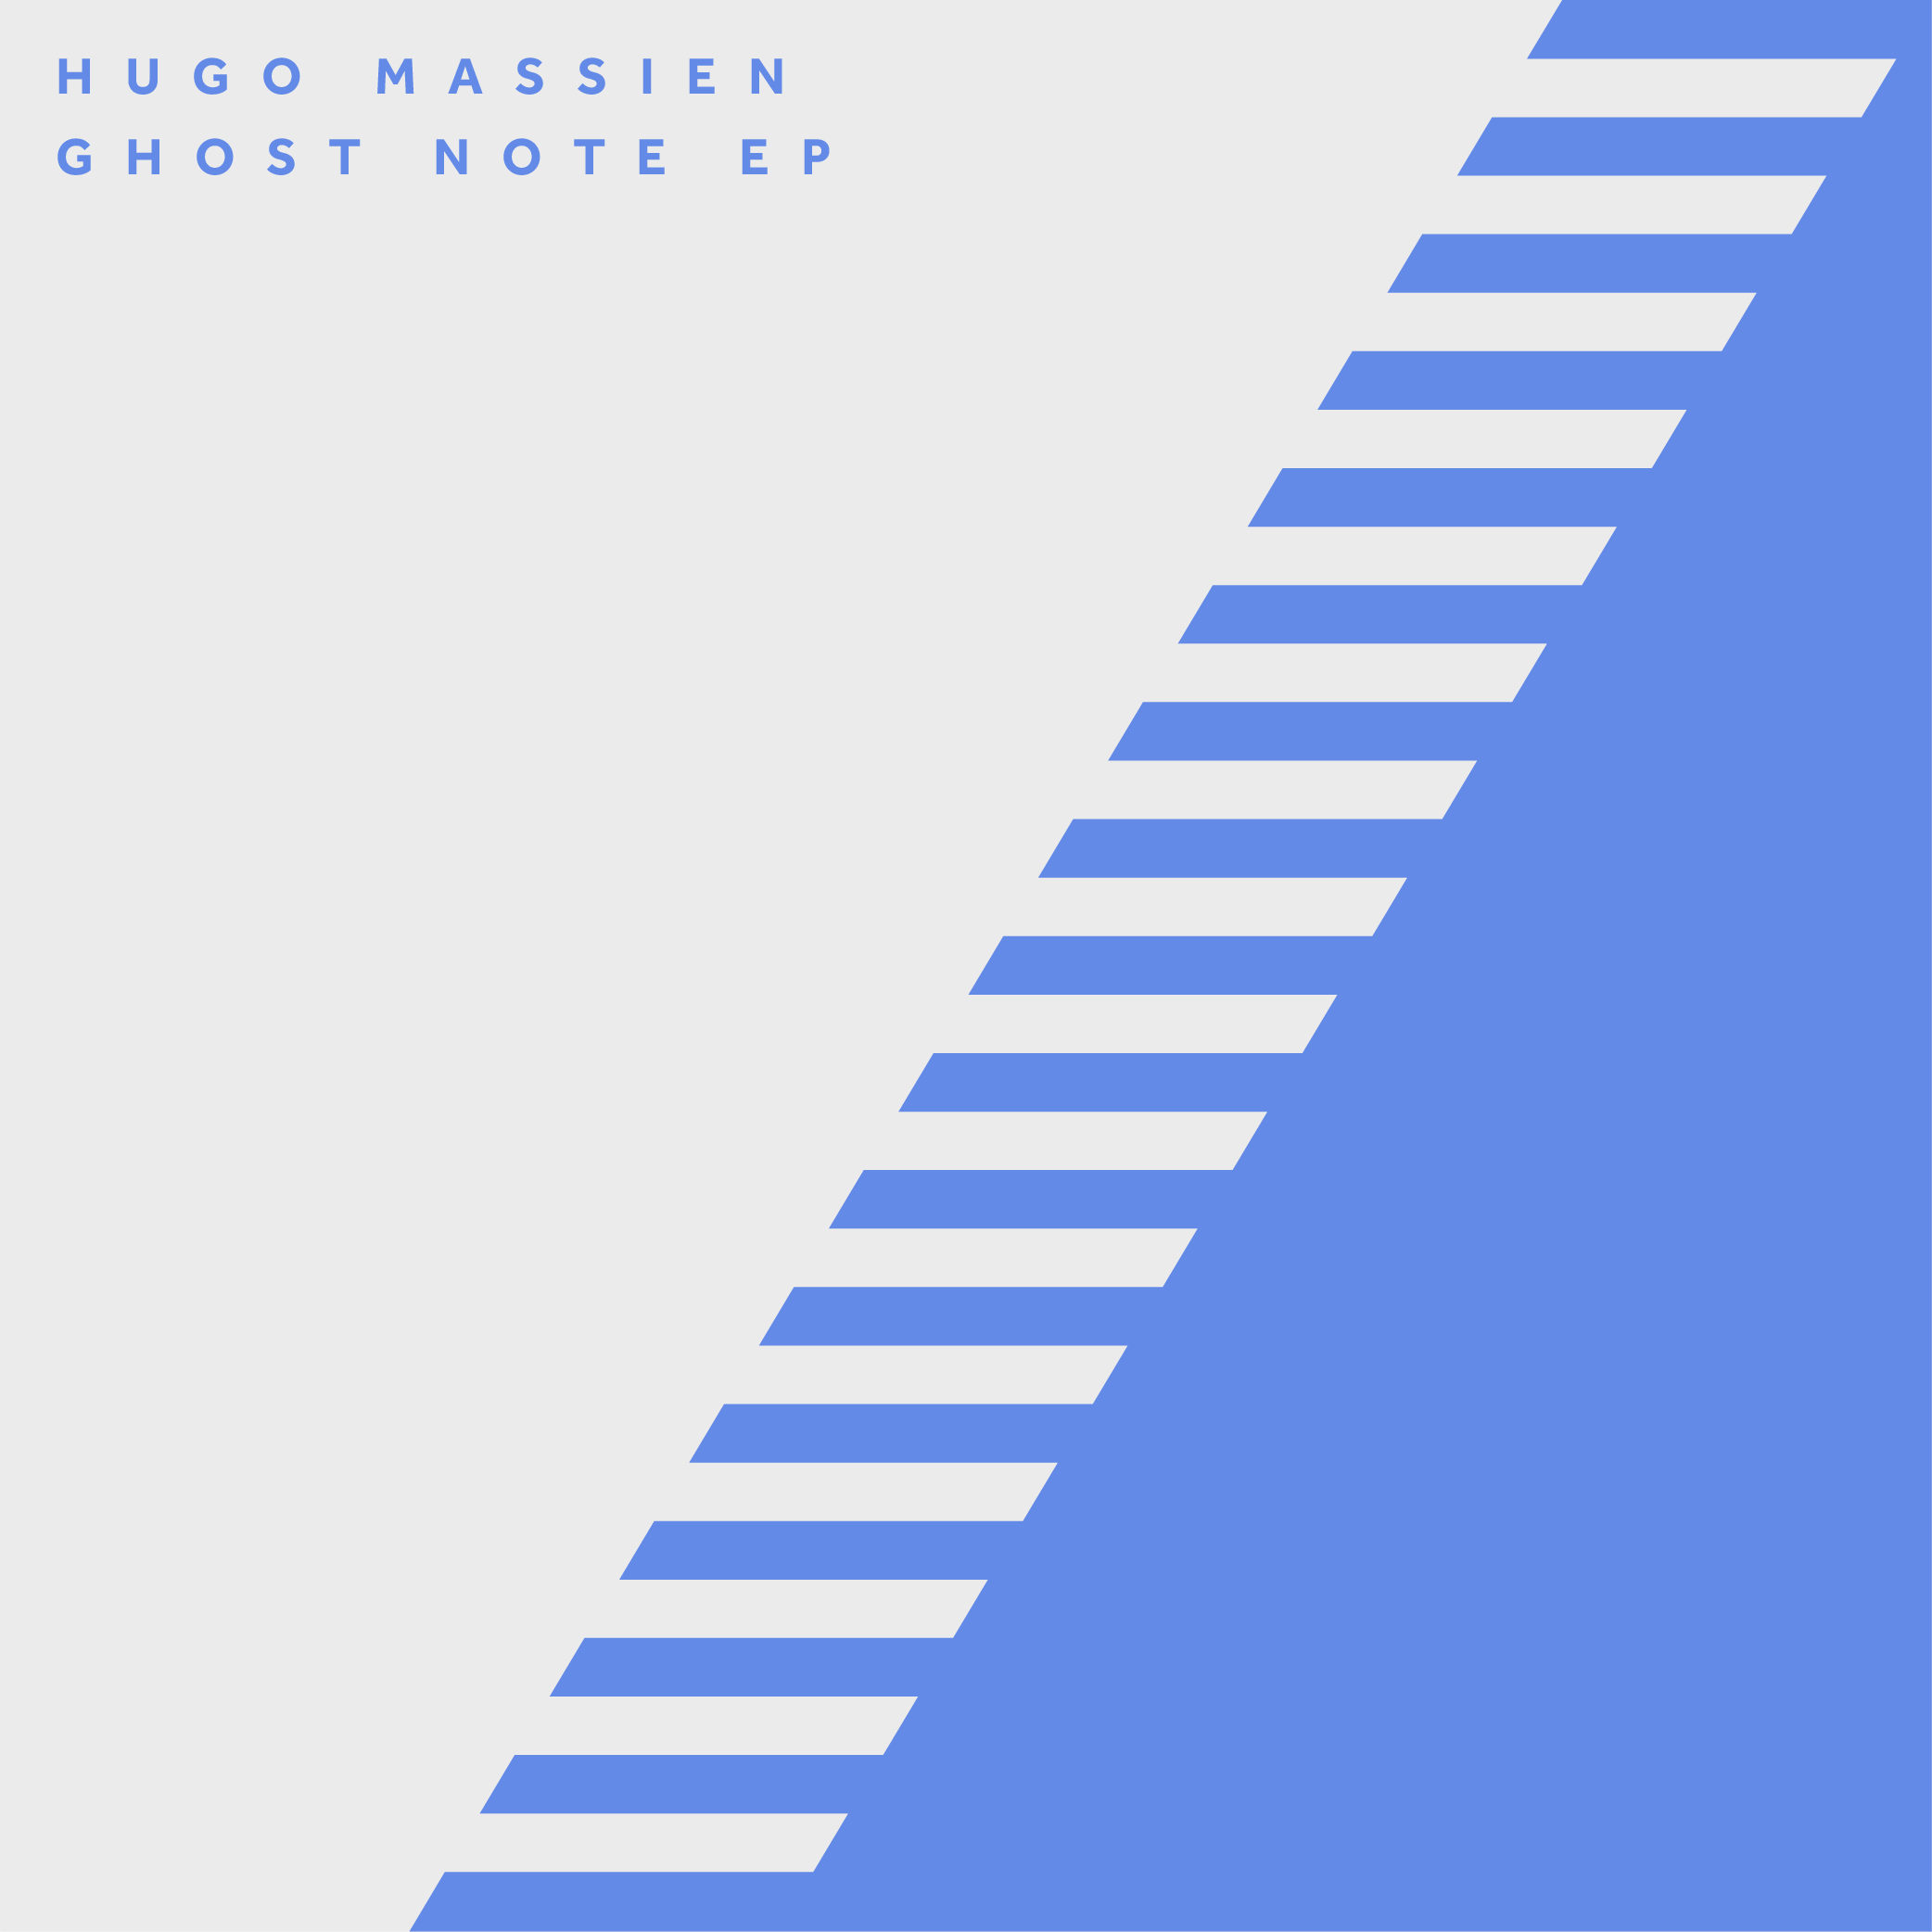 HUGO MASSIEN – GHOST NOTE EP